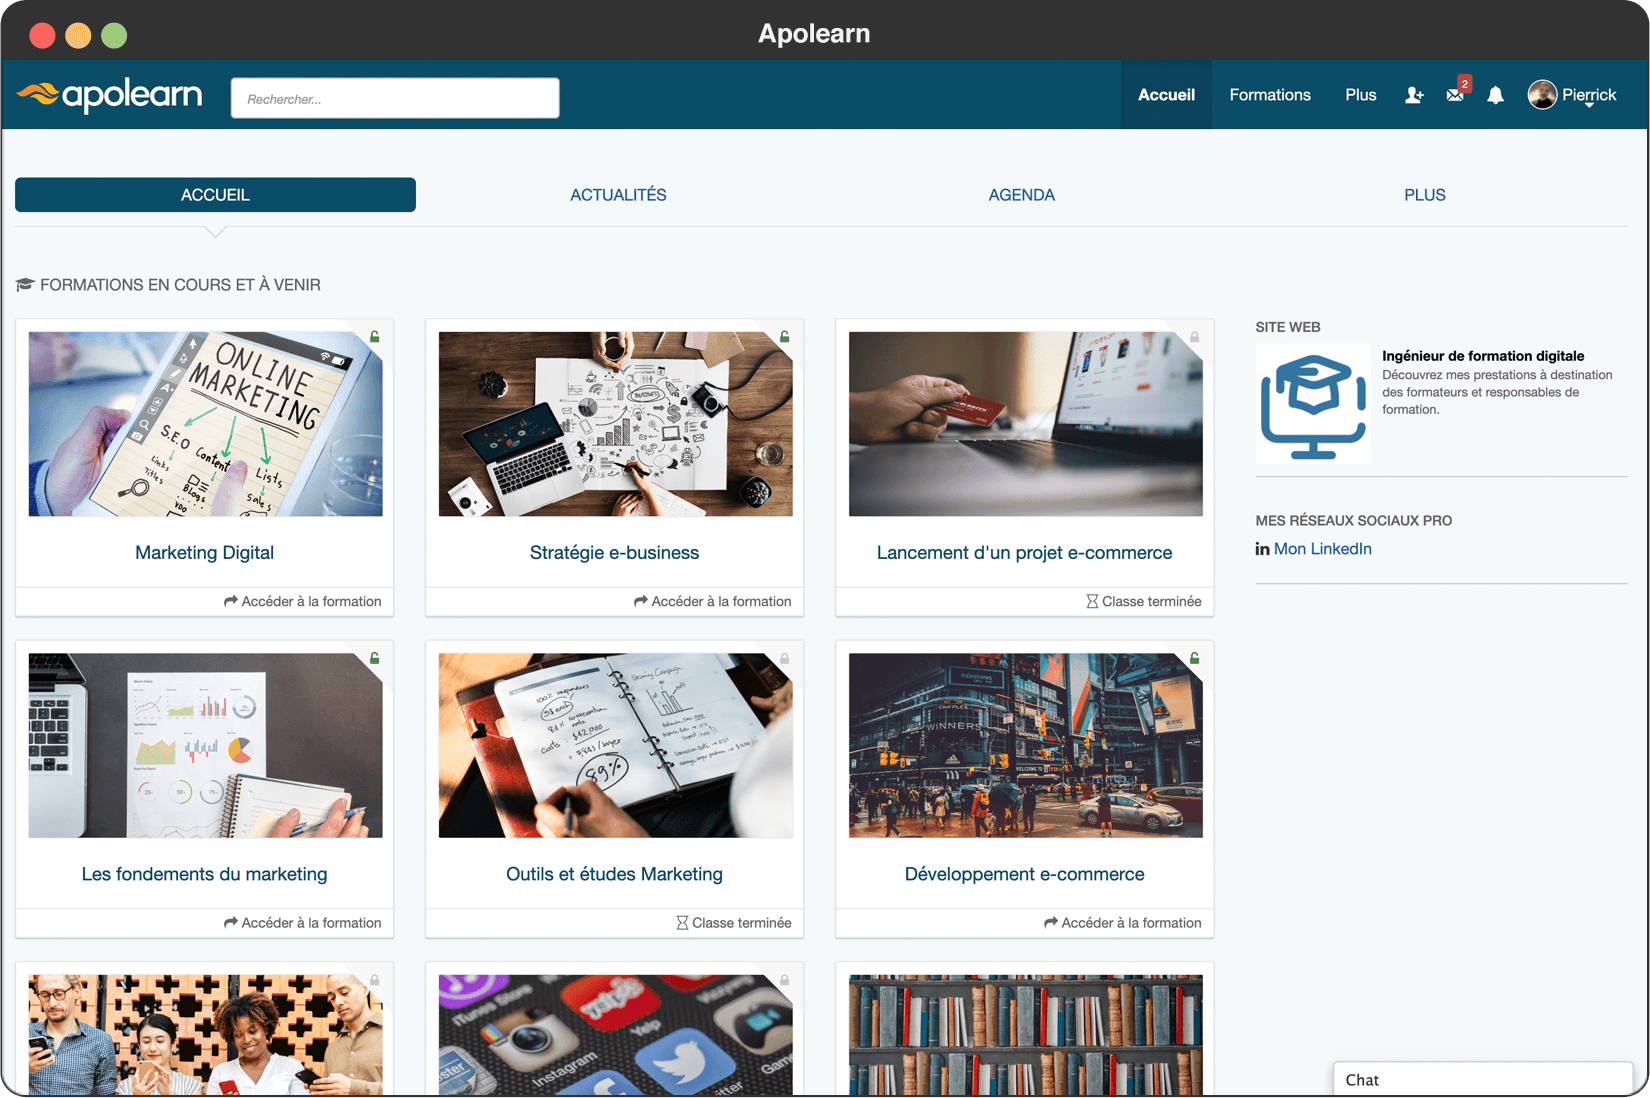 Page d'accueil d'Apolearn